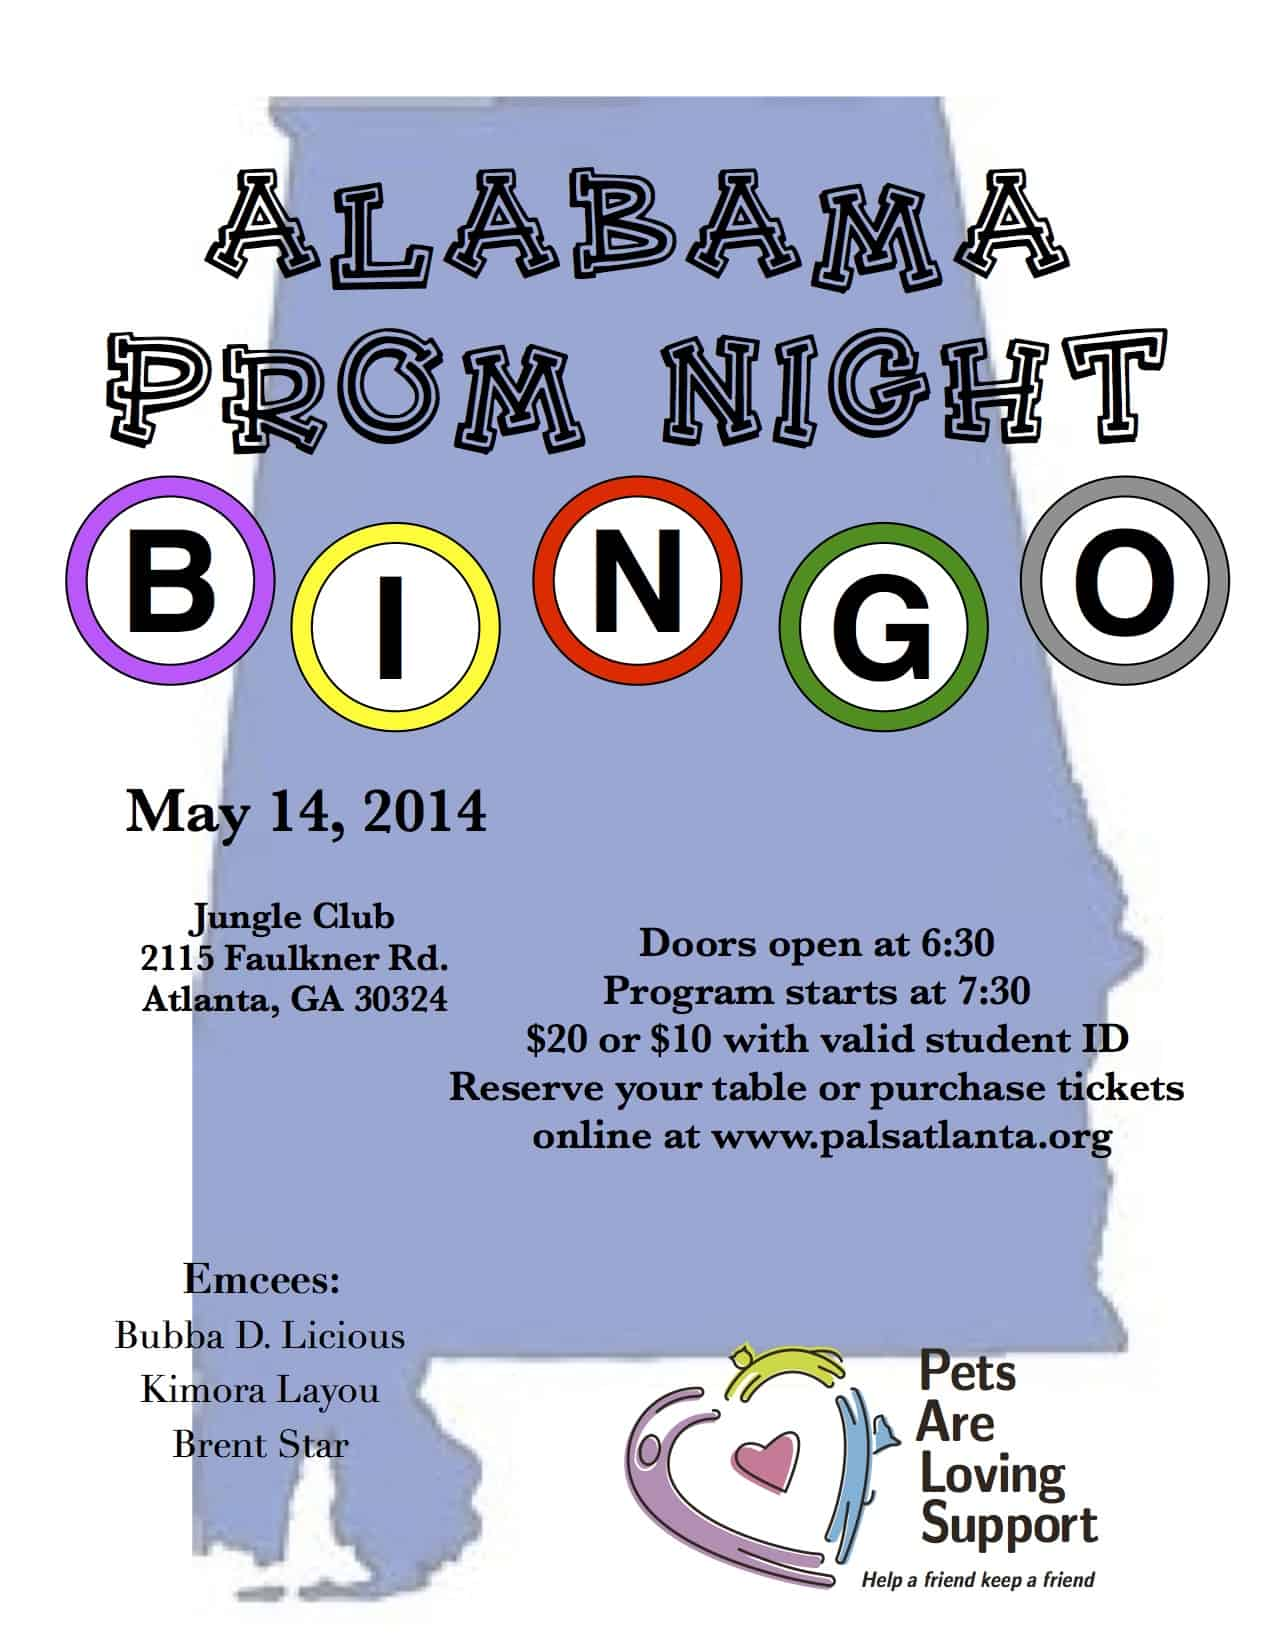 May - Alabama Prom Night Bingo!